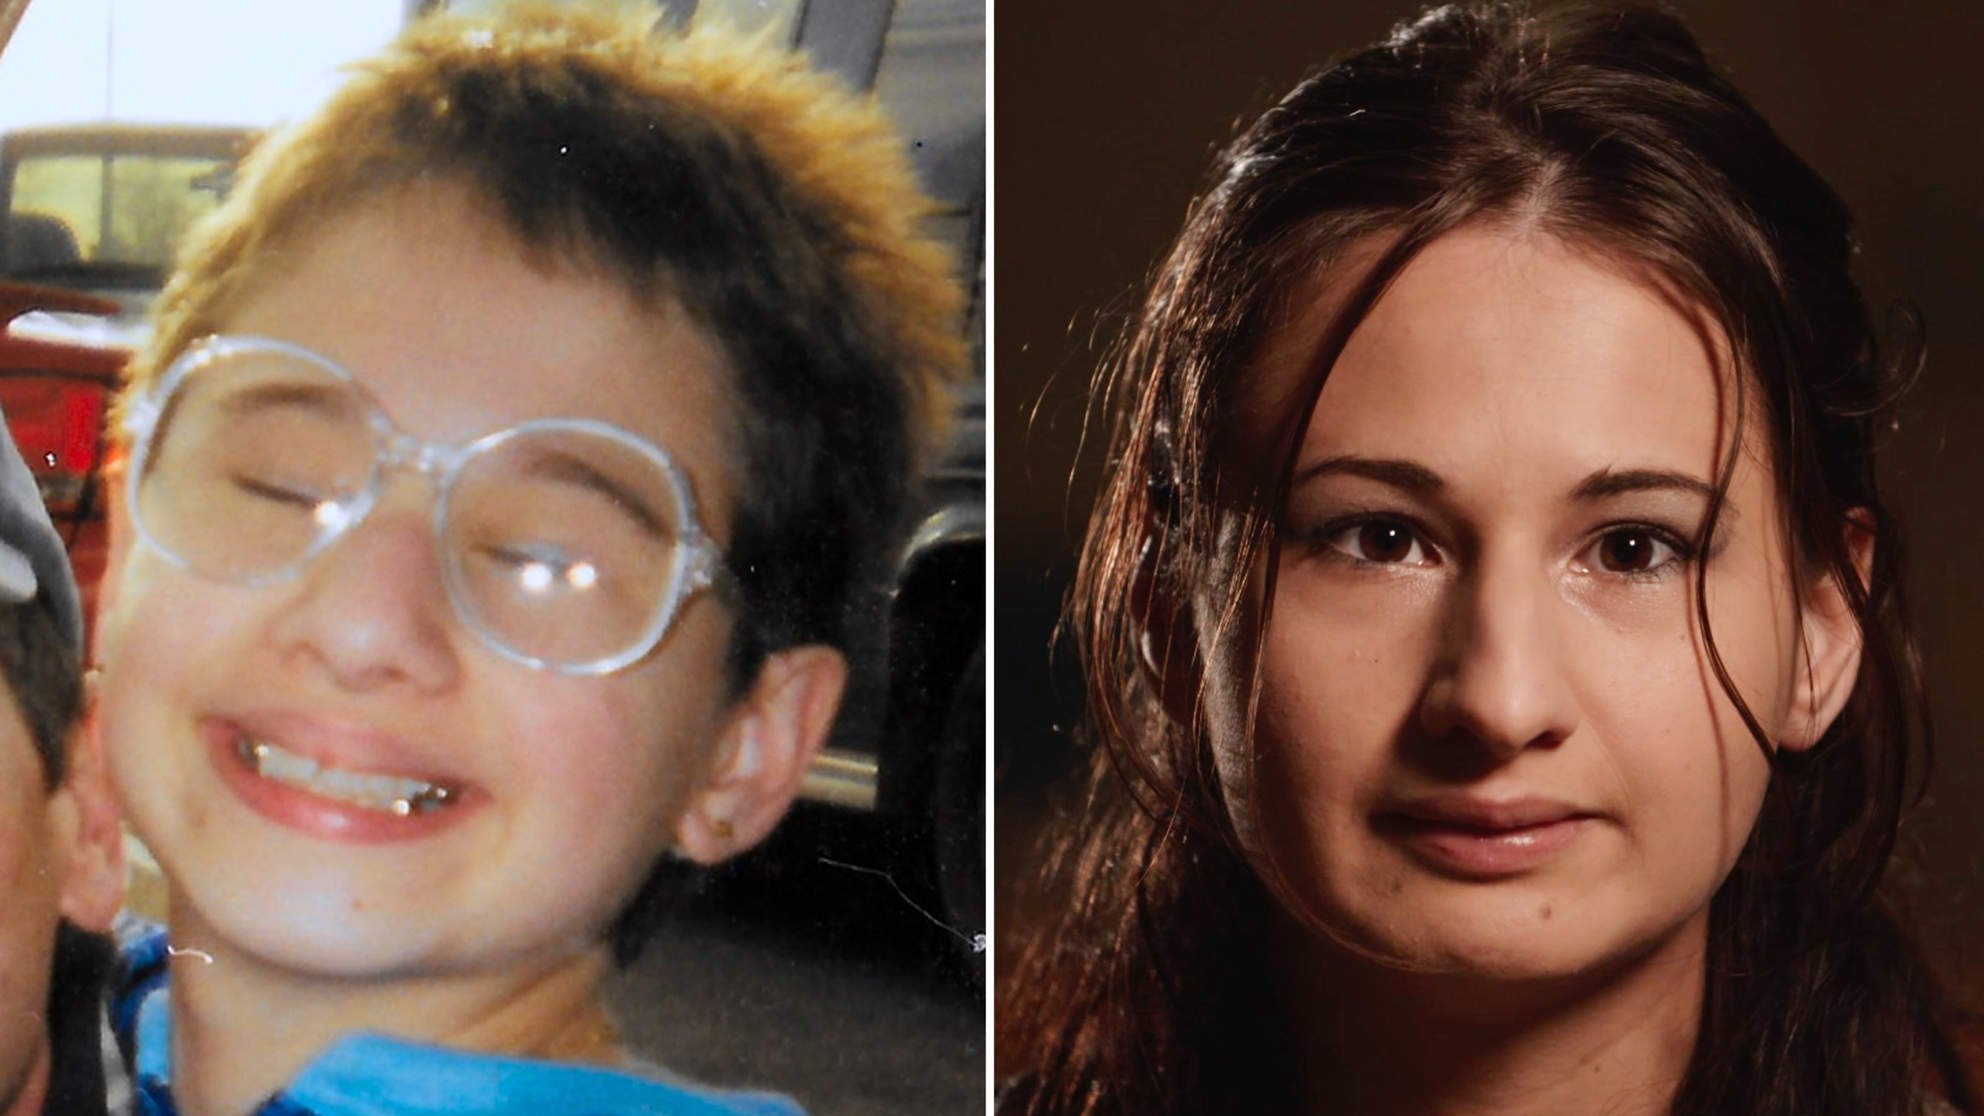 Gypsy Rose Blanchard Is Engaged to Man Who Contacted Her in Prison After Documentary